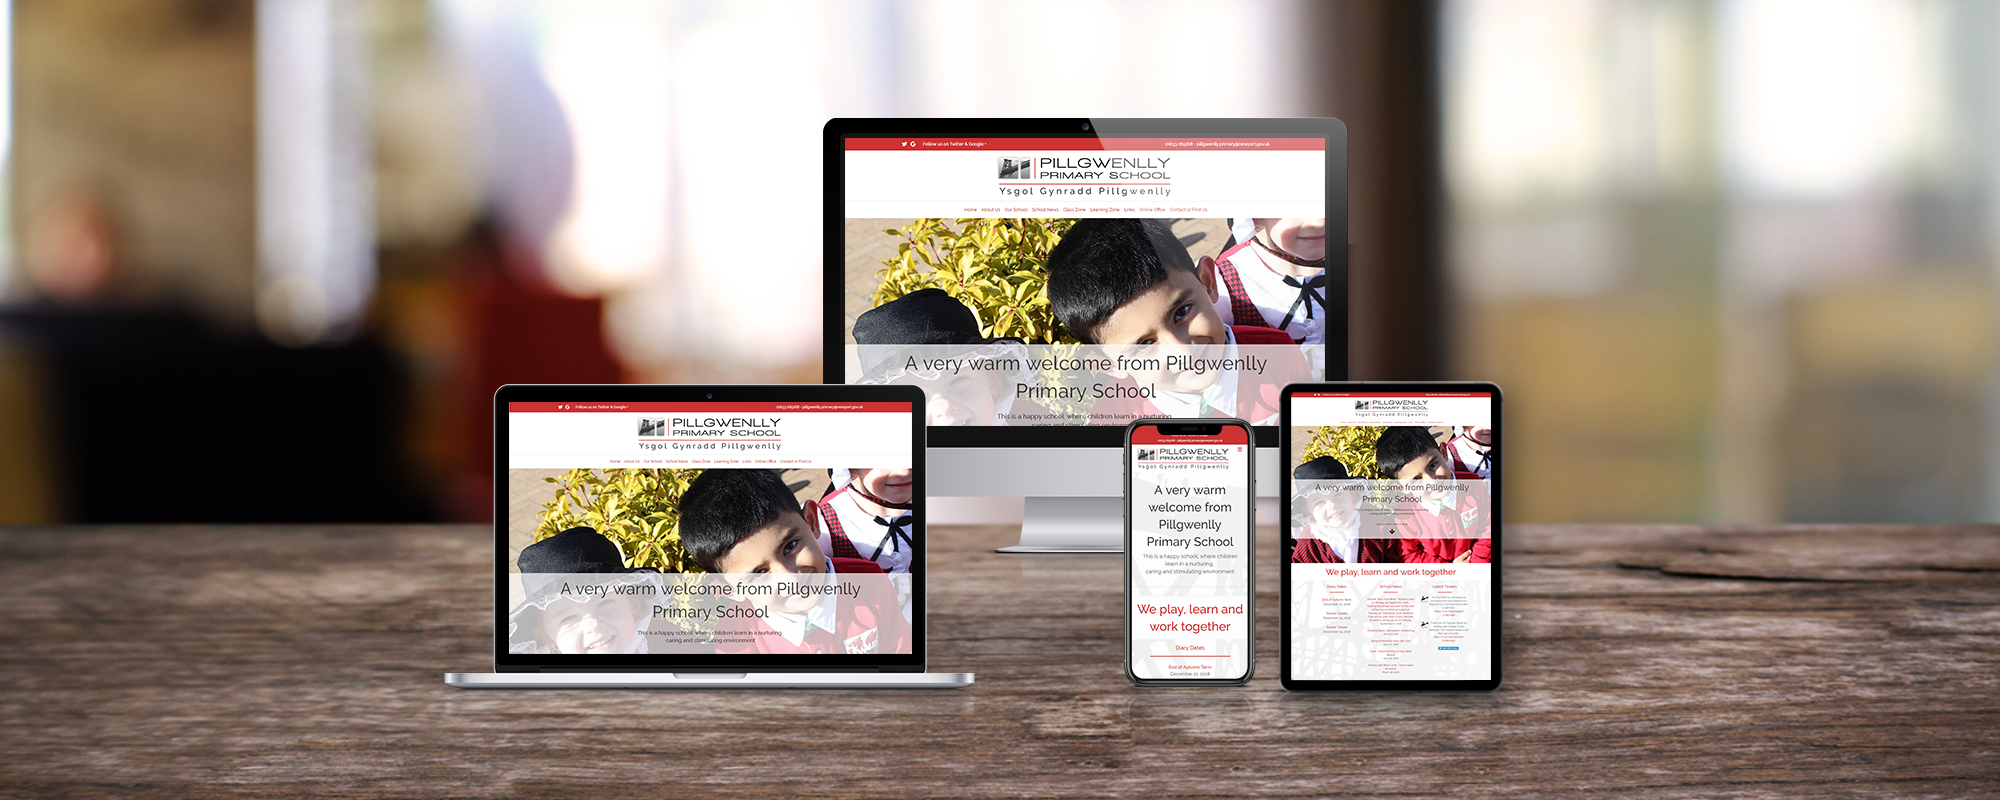 Pillgwenlly-Primary-School-Website-Design-digiDen